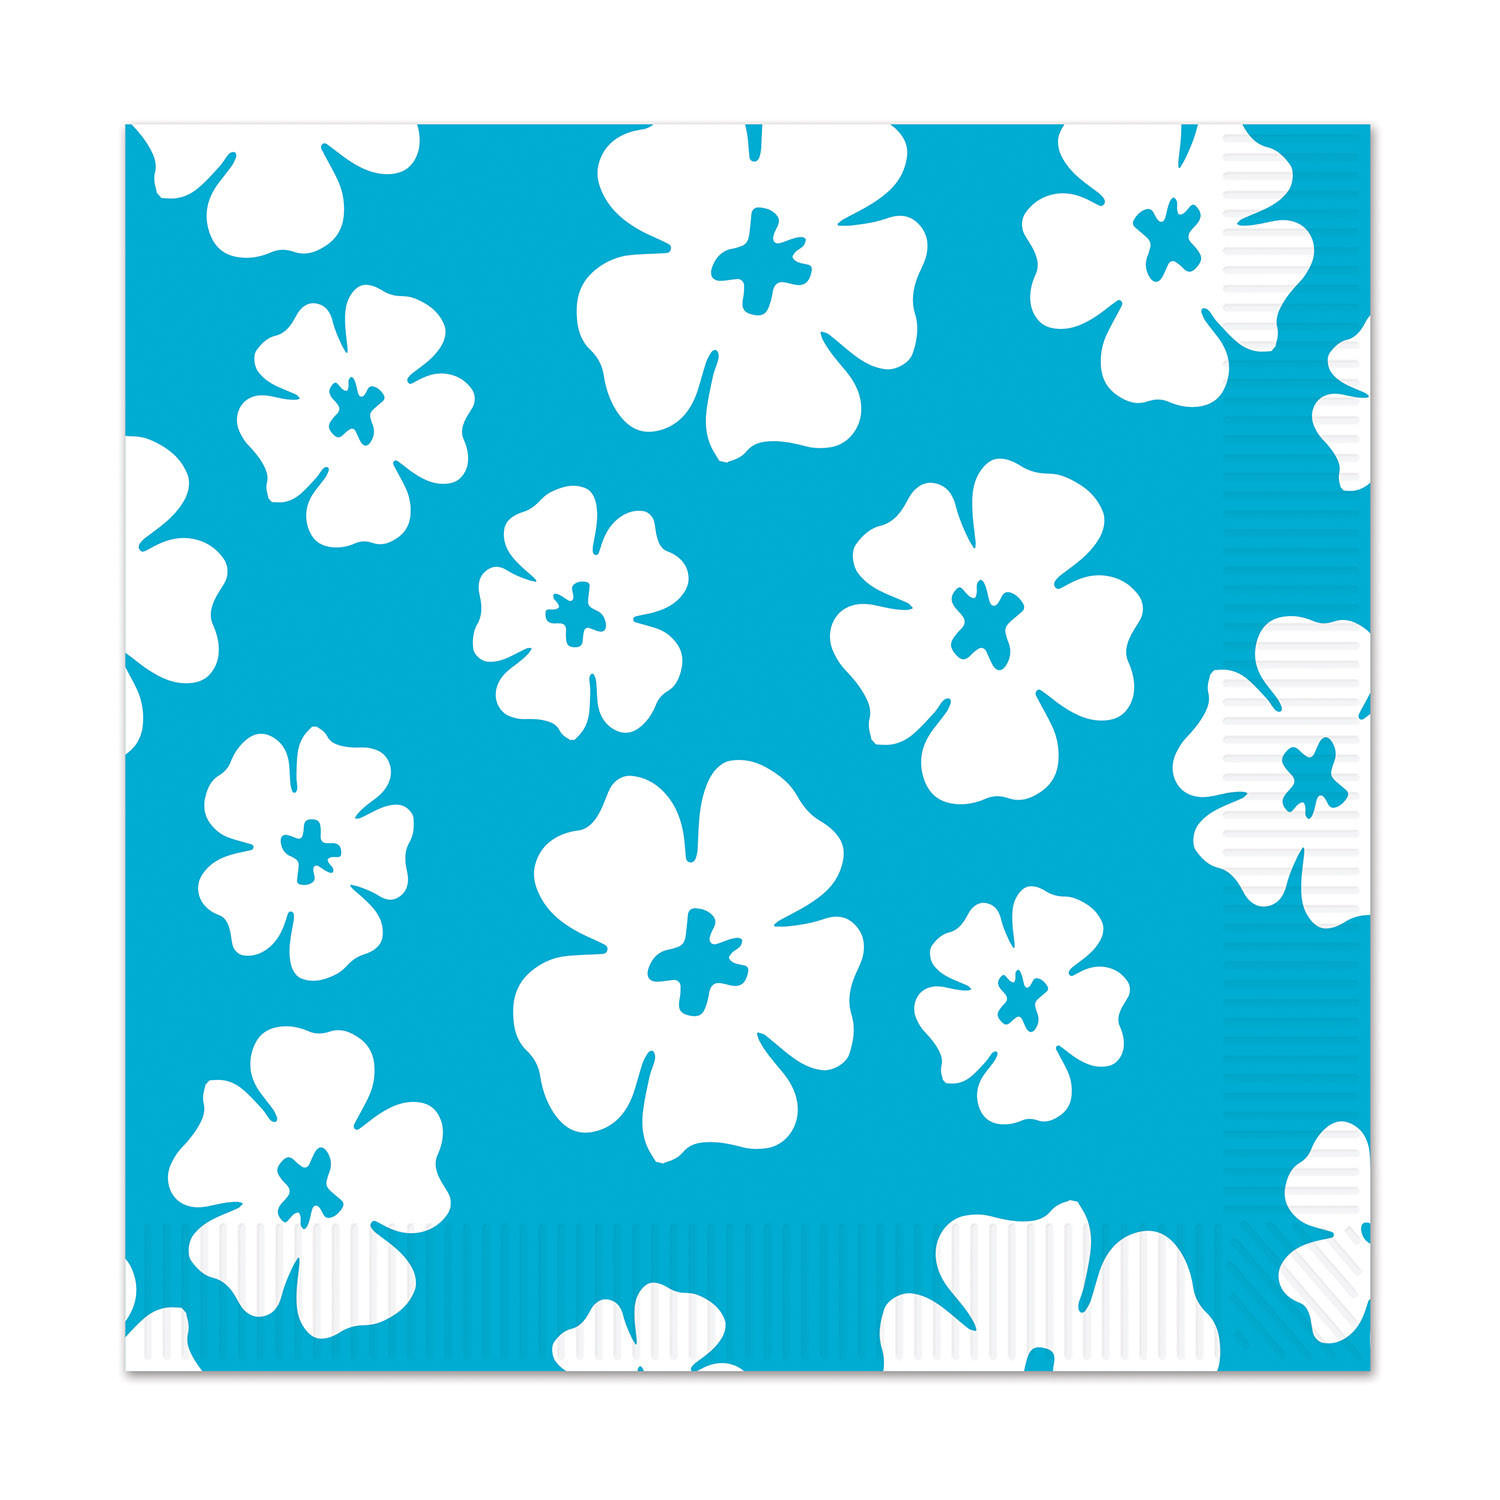 Hibiscus Luncheon Napkins (Pack of 192) Hibiscus Luncheon Napkins, decoration, luau, beach, new years eve, wholesale, inexpensive, bulk